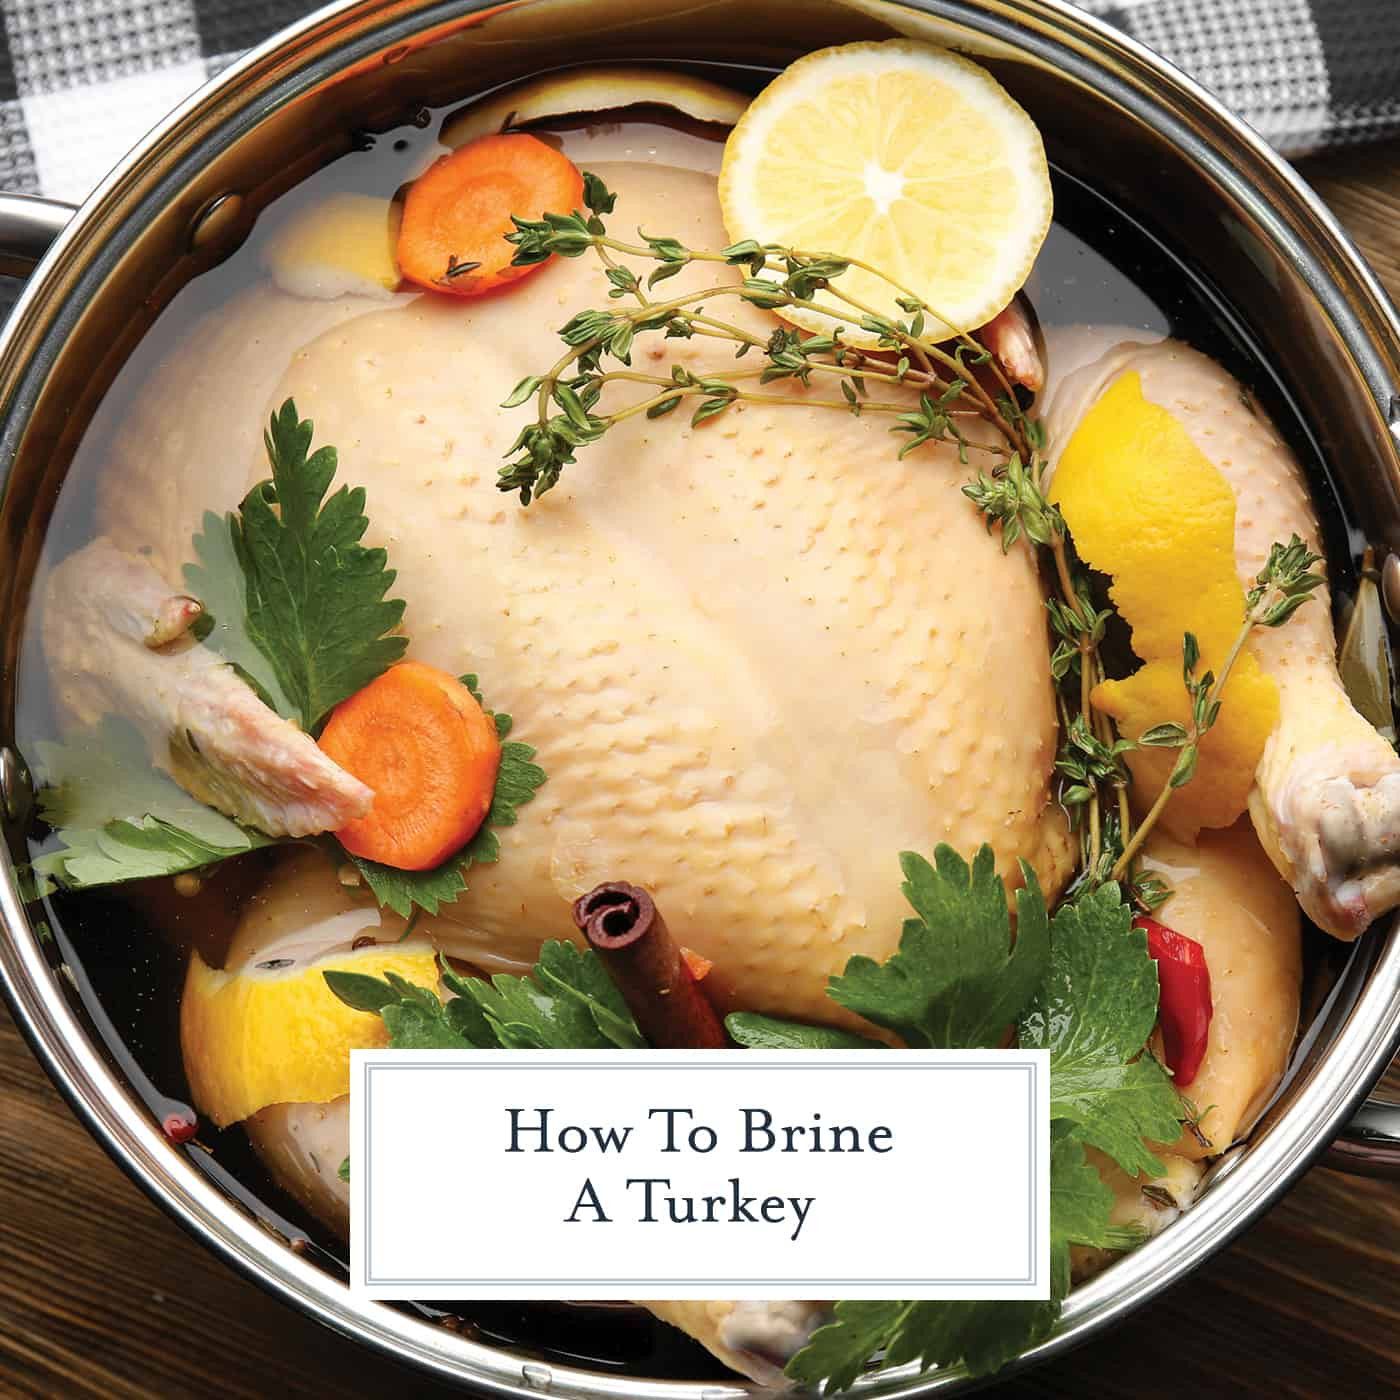 Best Turkey Brine Recipe Thanksgiving  How to Brine a Turkey VIDEO